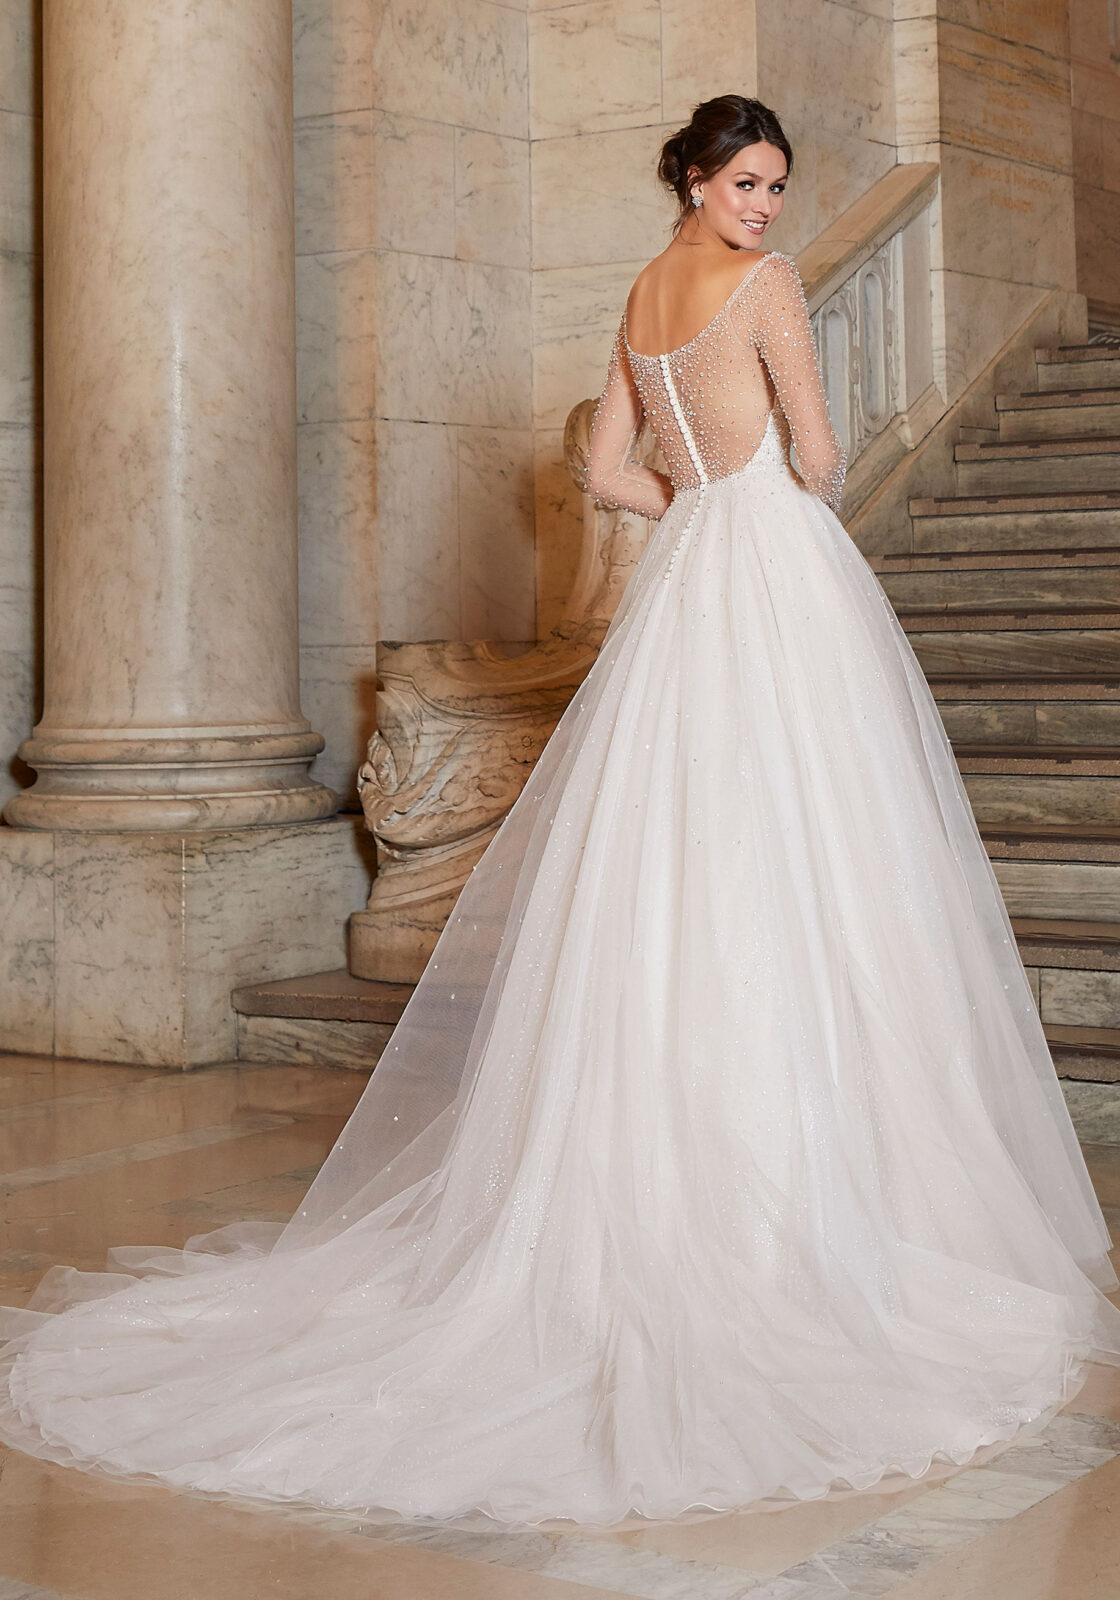 Madison Gardner wedding dresses at Miosa Bride